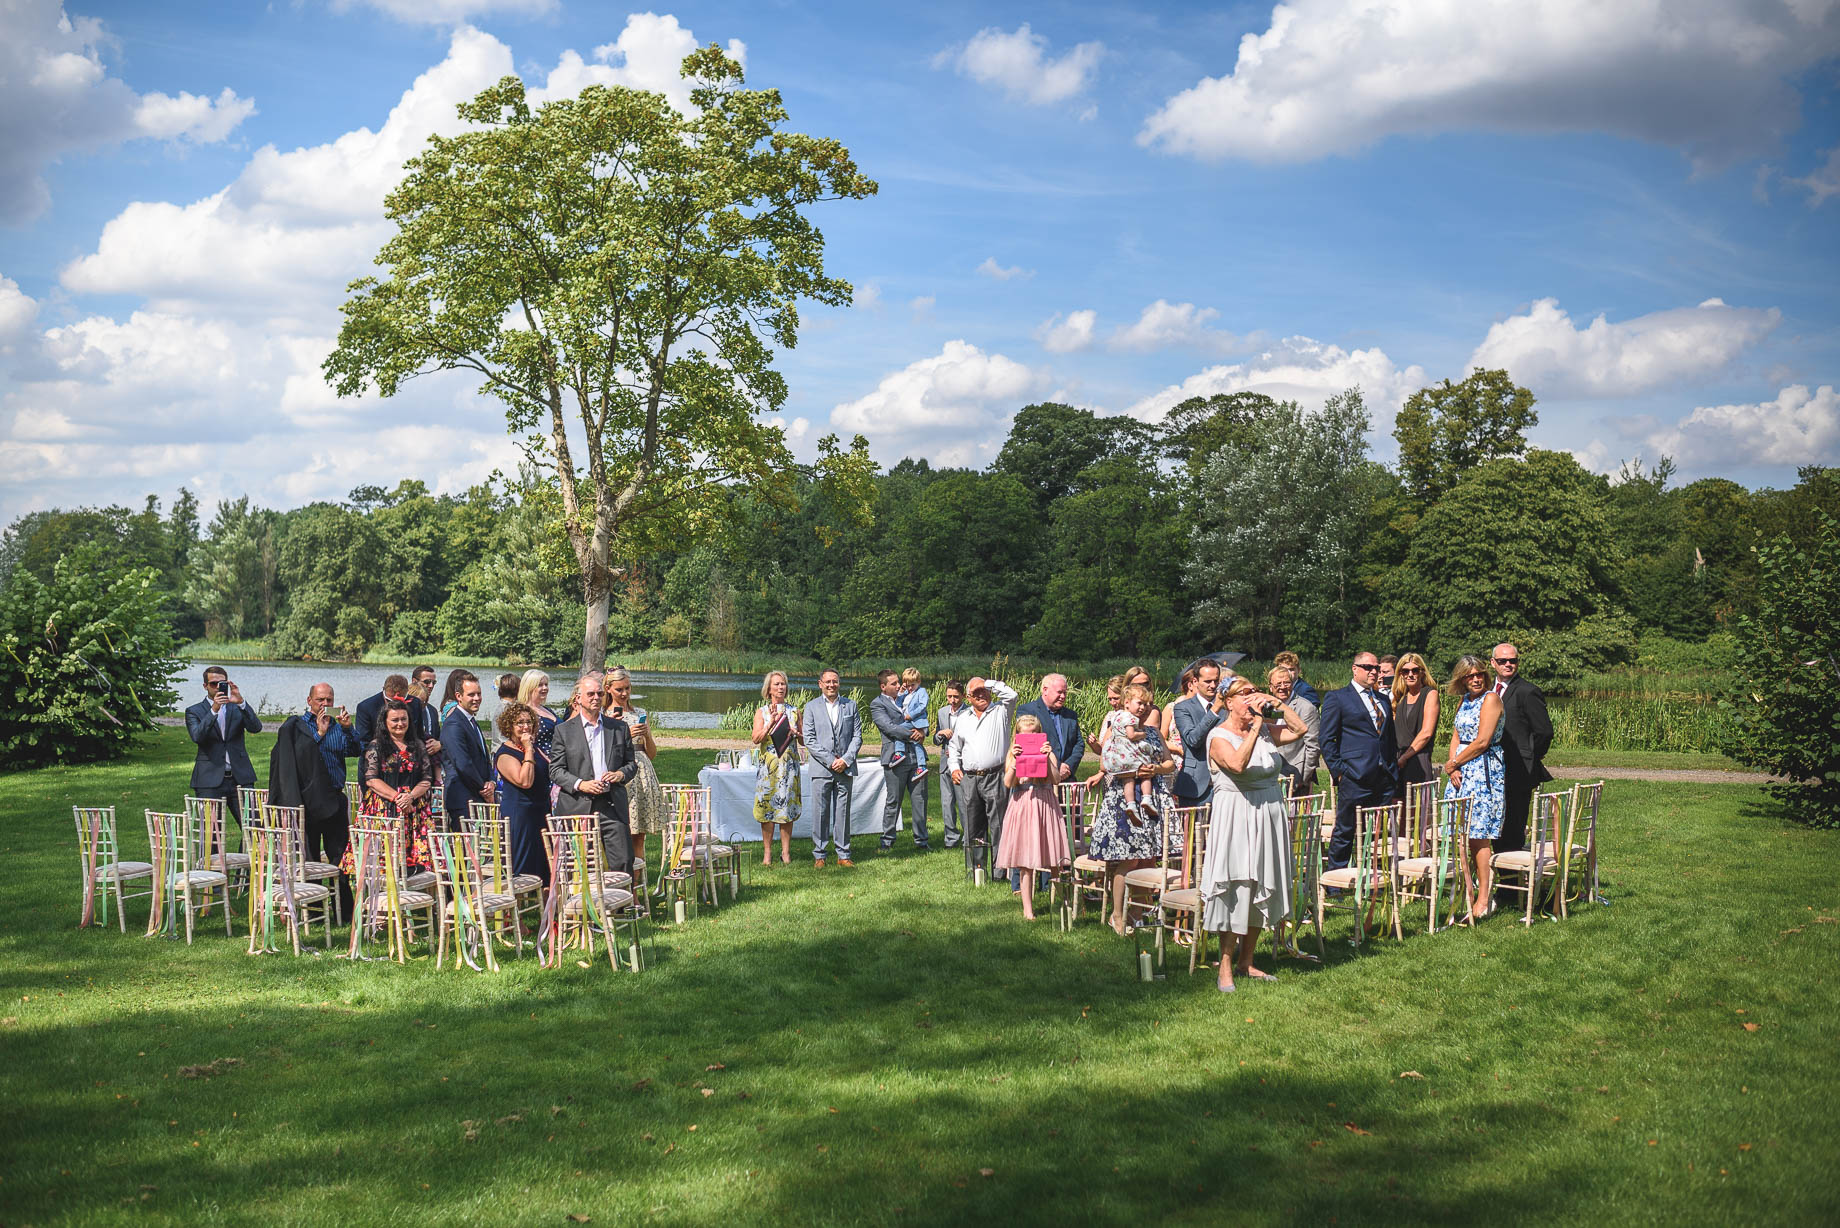 Luton Hoo wedding photography by Guy Collier Photography - Lauren and Gem (54 of 178)